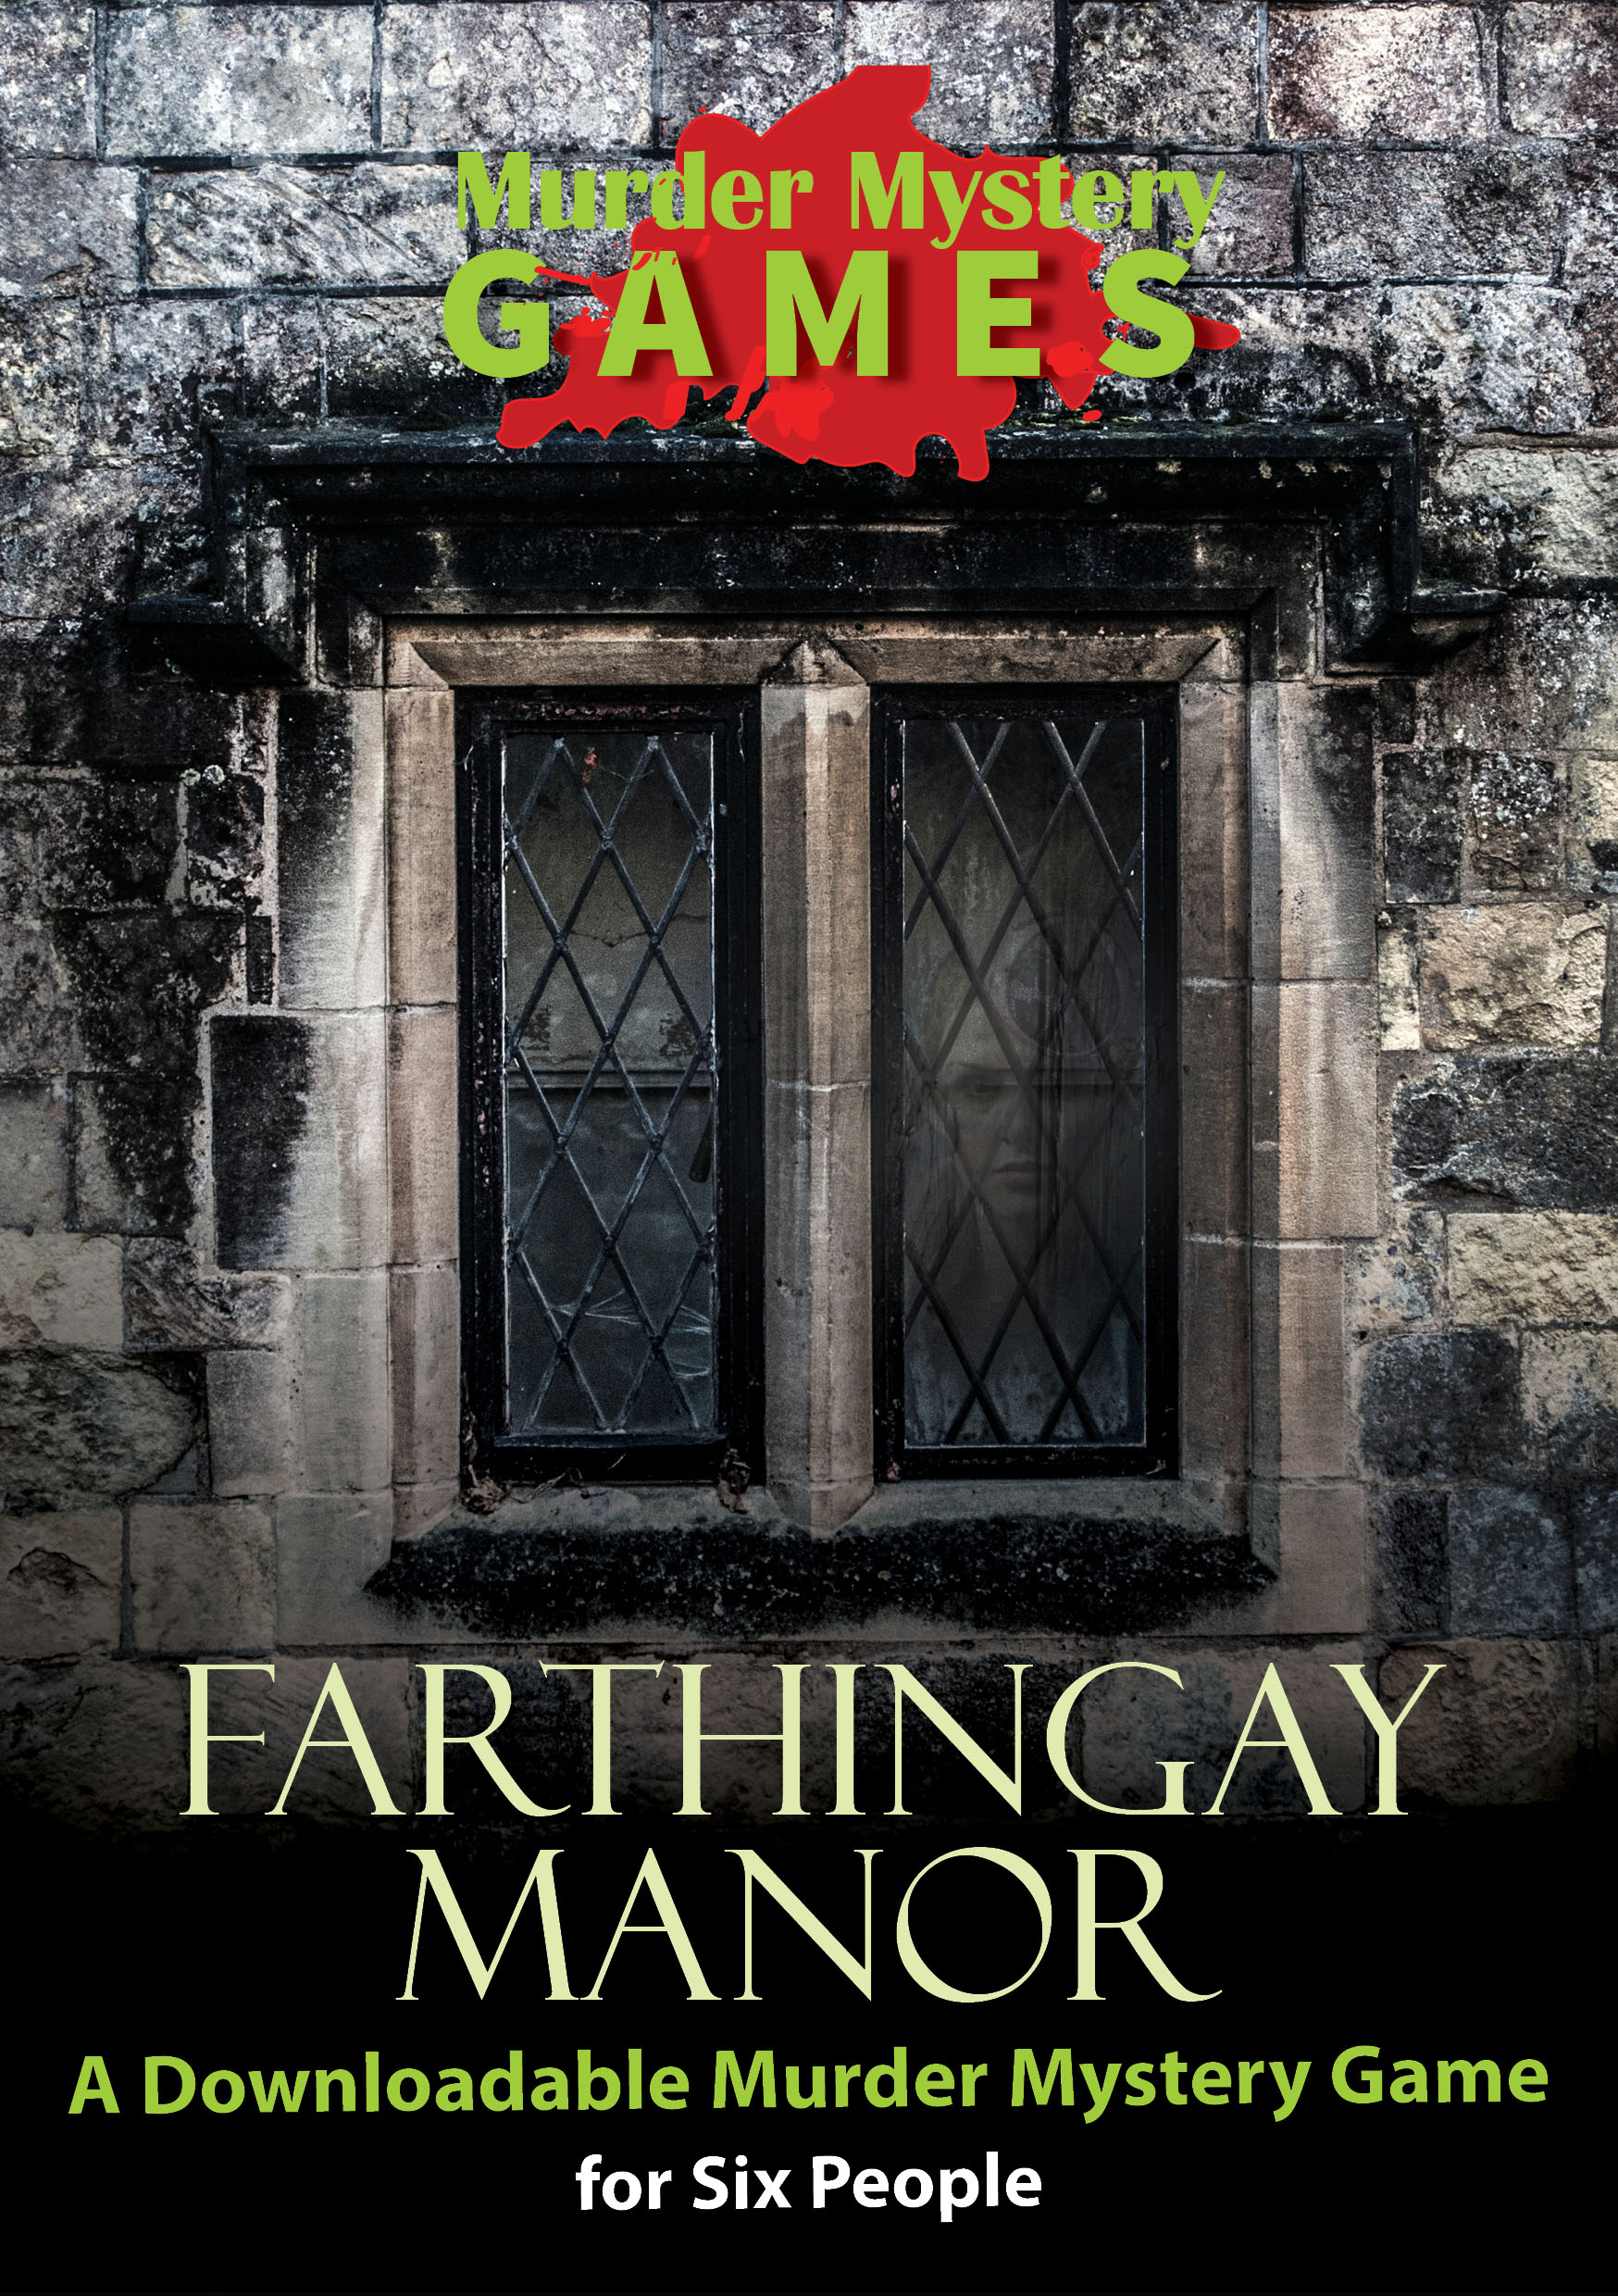 Farthingay Manor - A Murder Mystery Game for 6 People